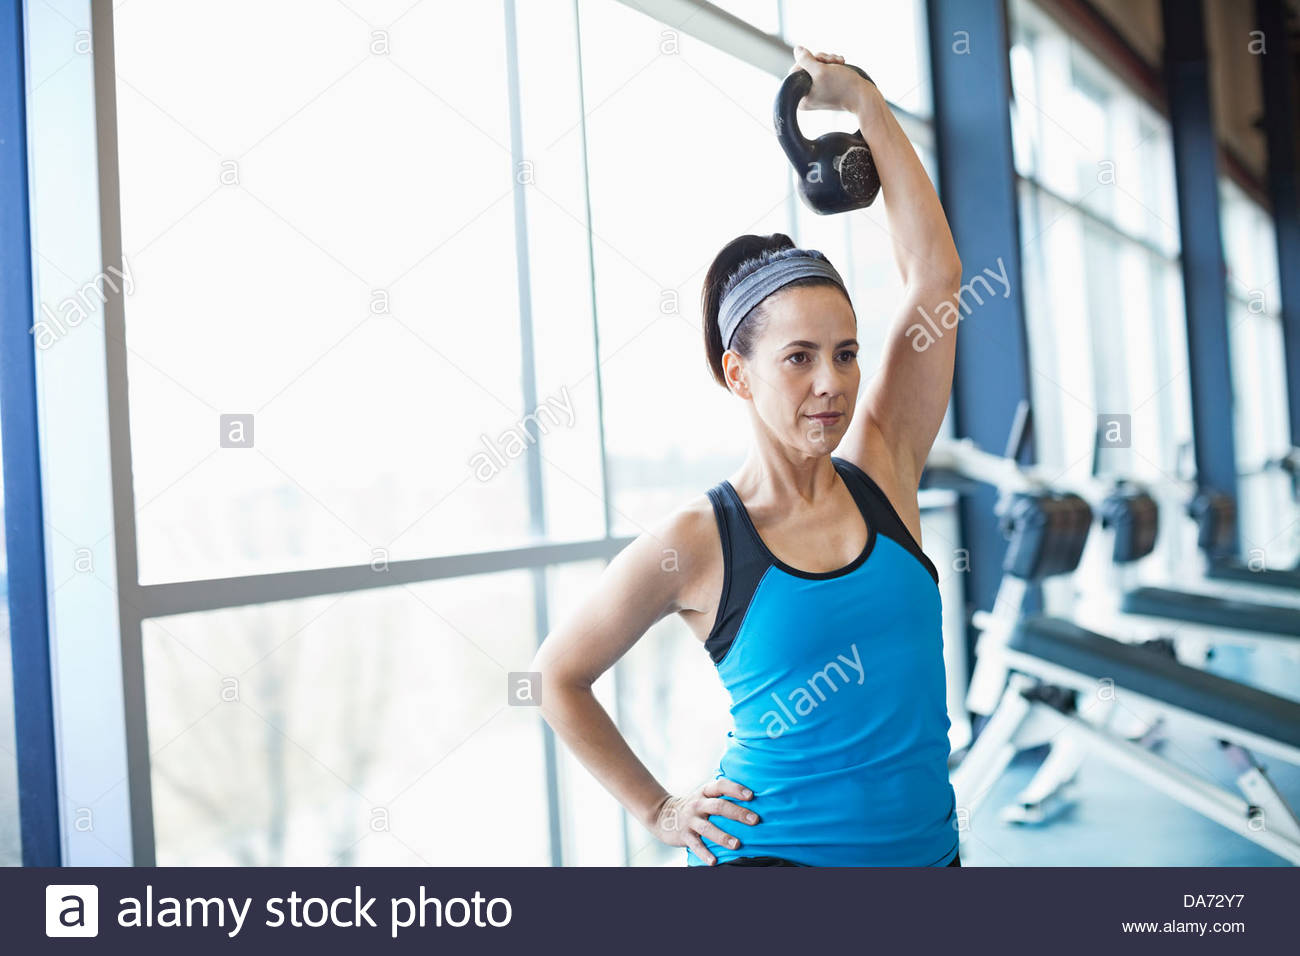 Woman exercising with kettlebell in fitness center - Stock Image